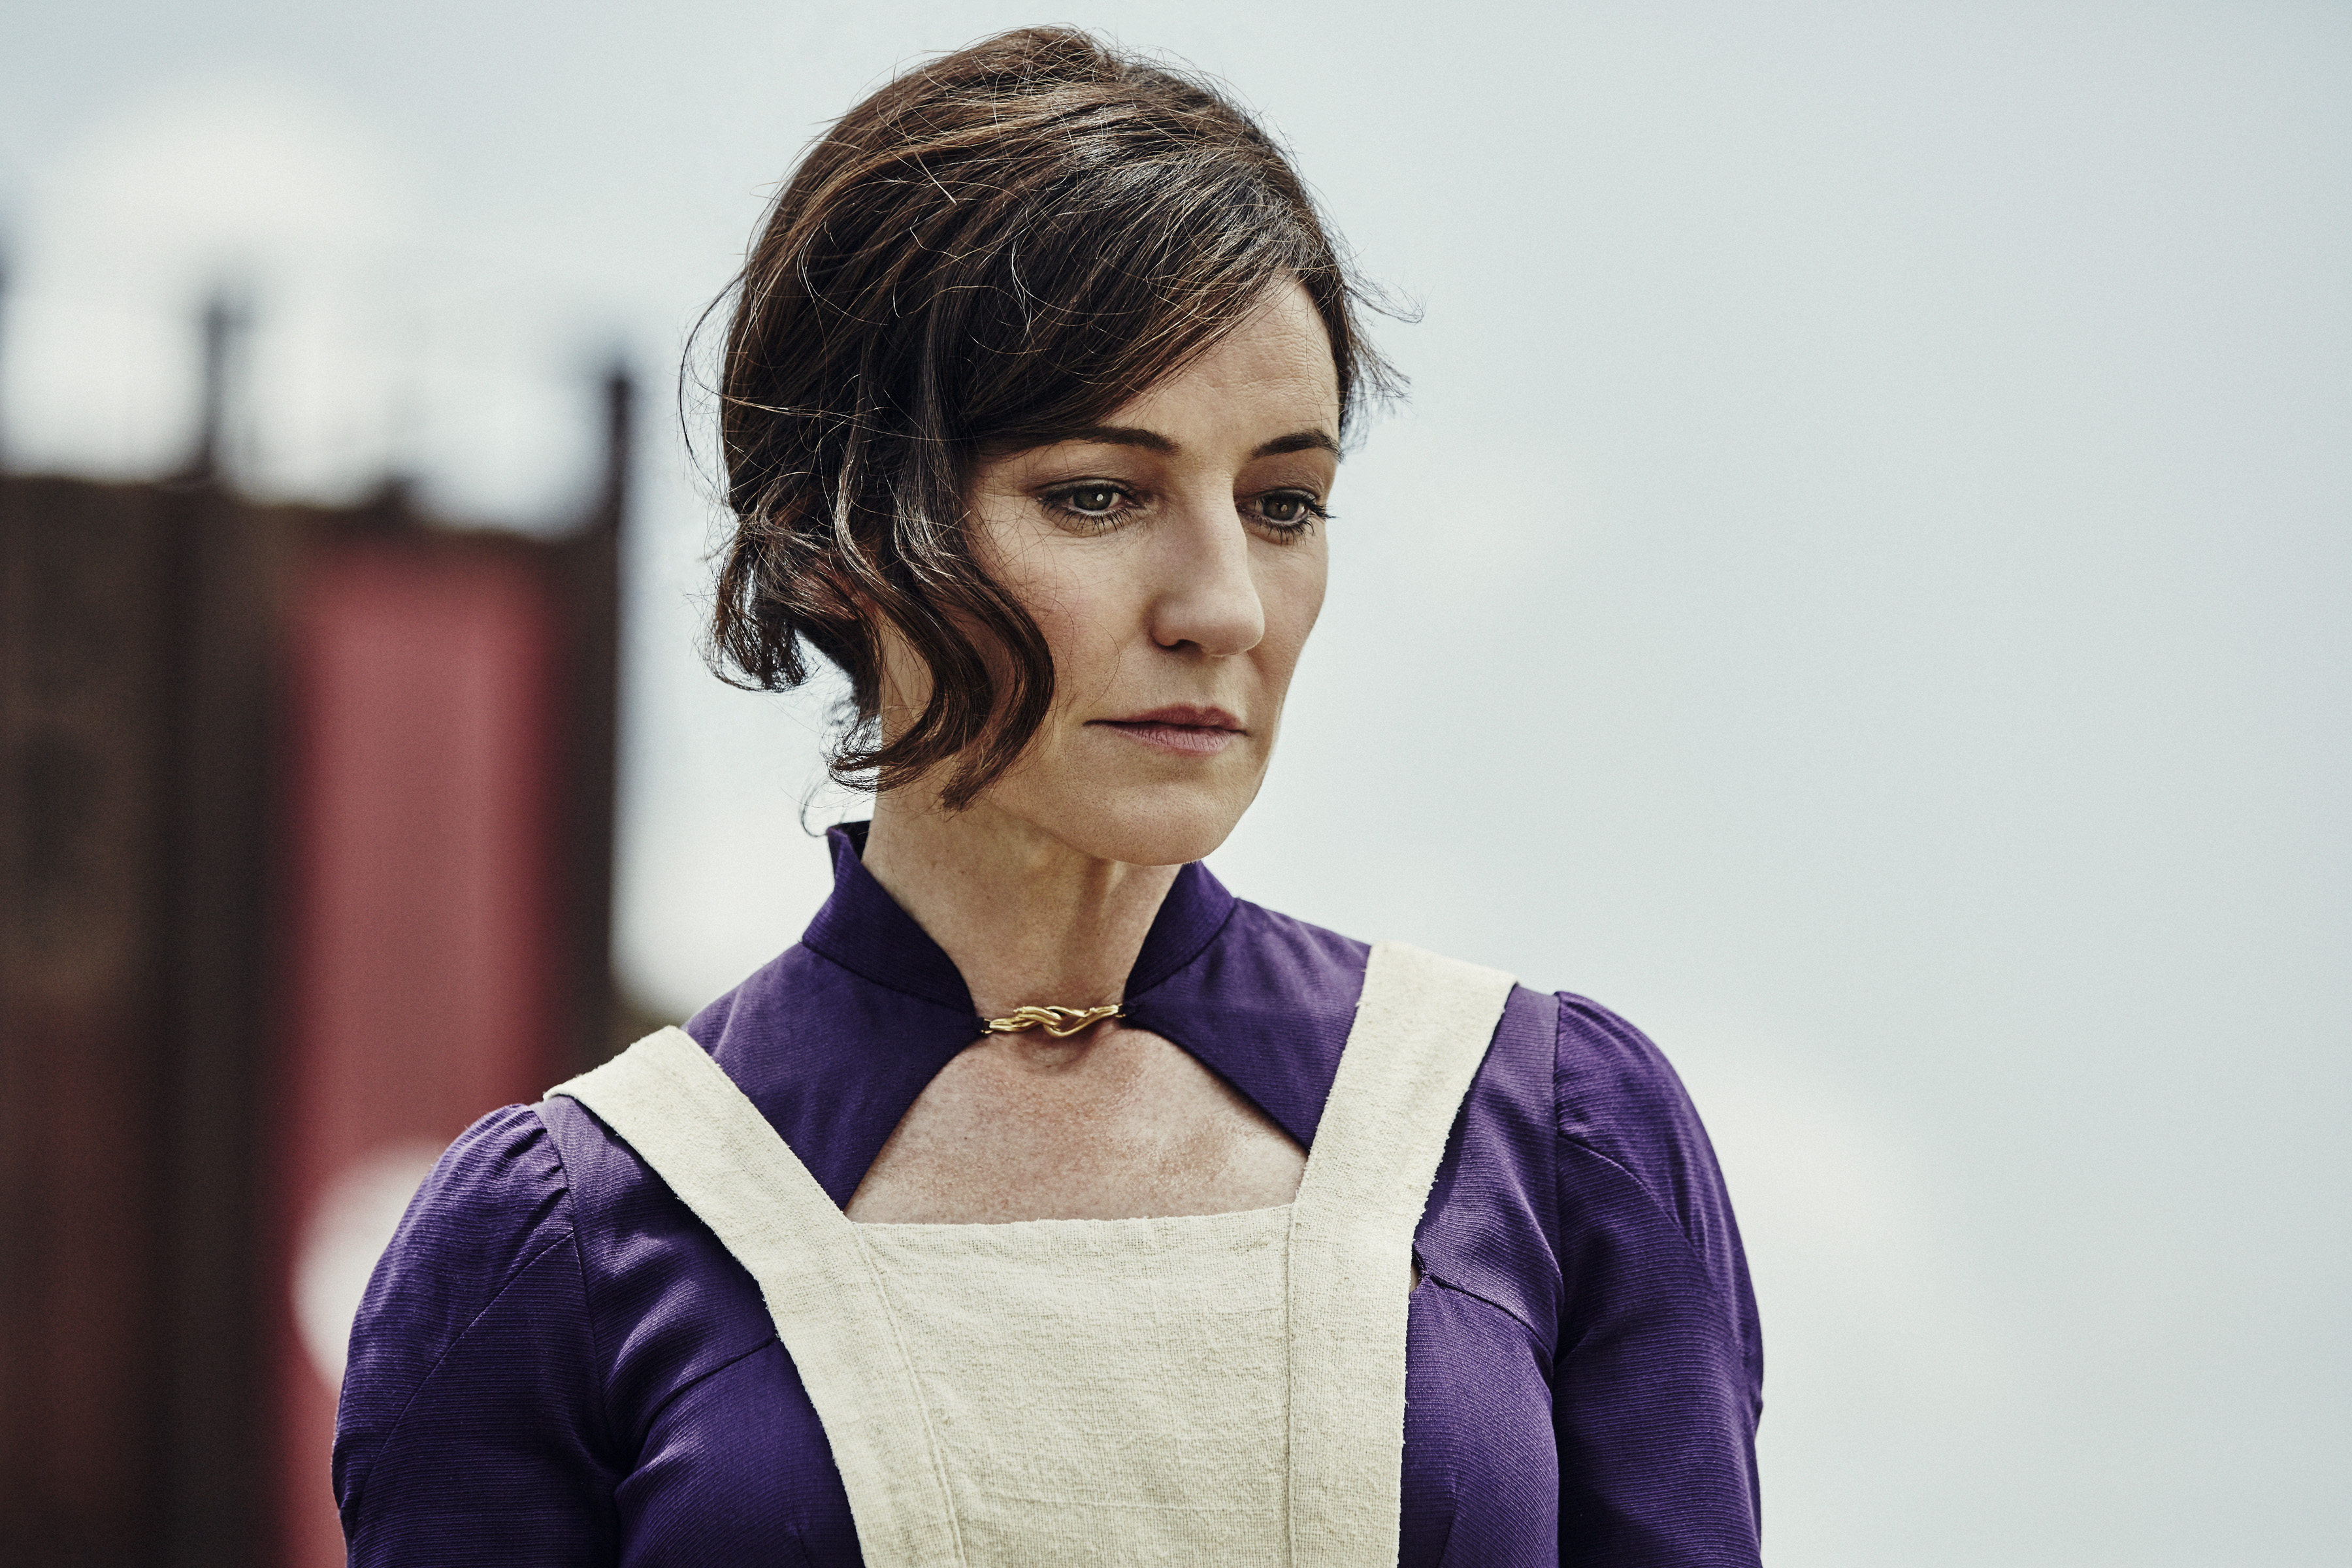 Orla Brady as Lydia - Into the Badlands